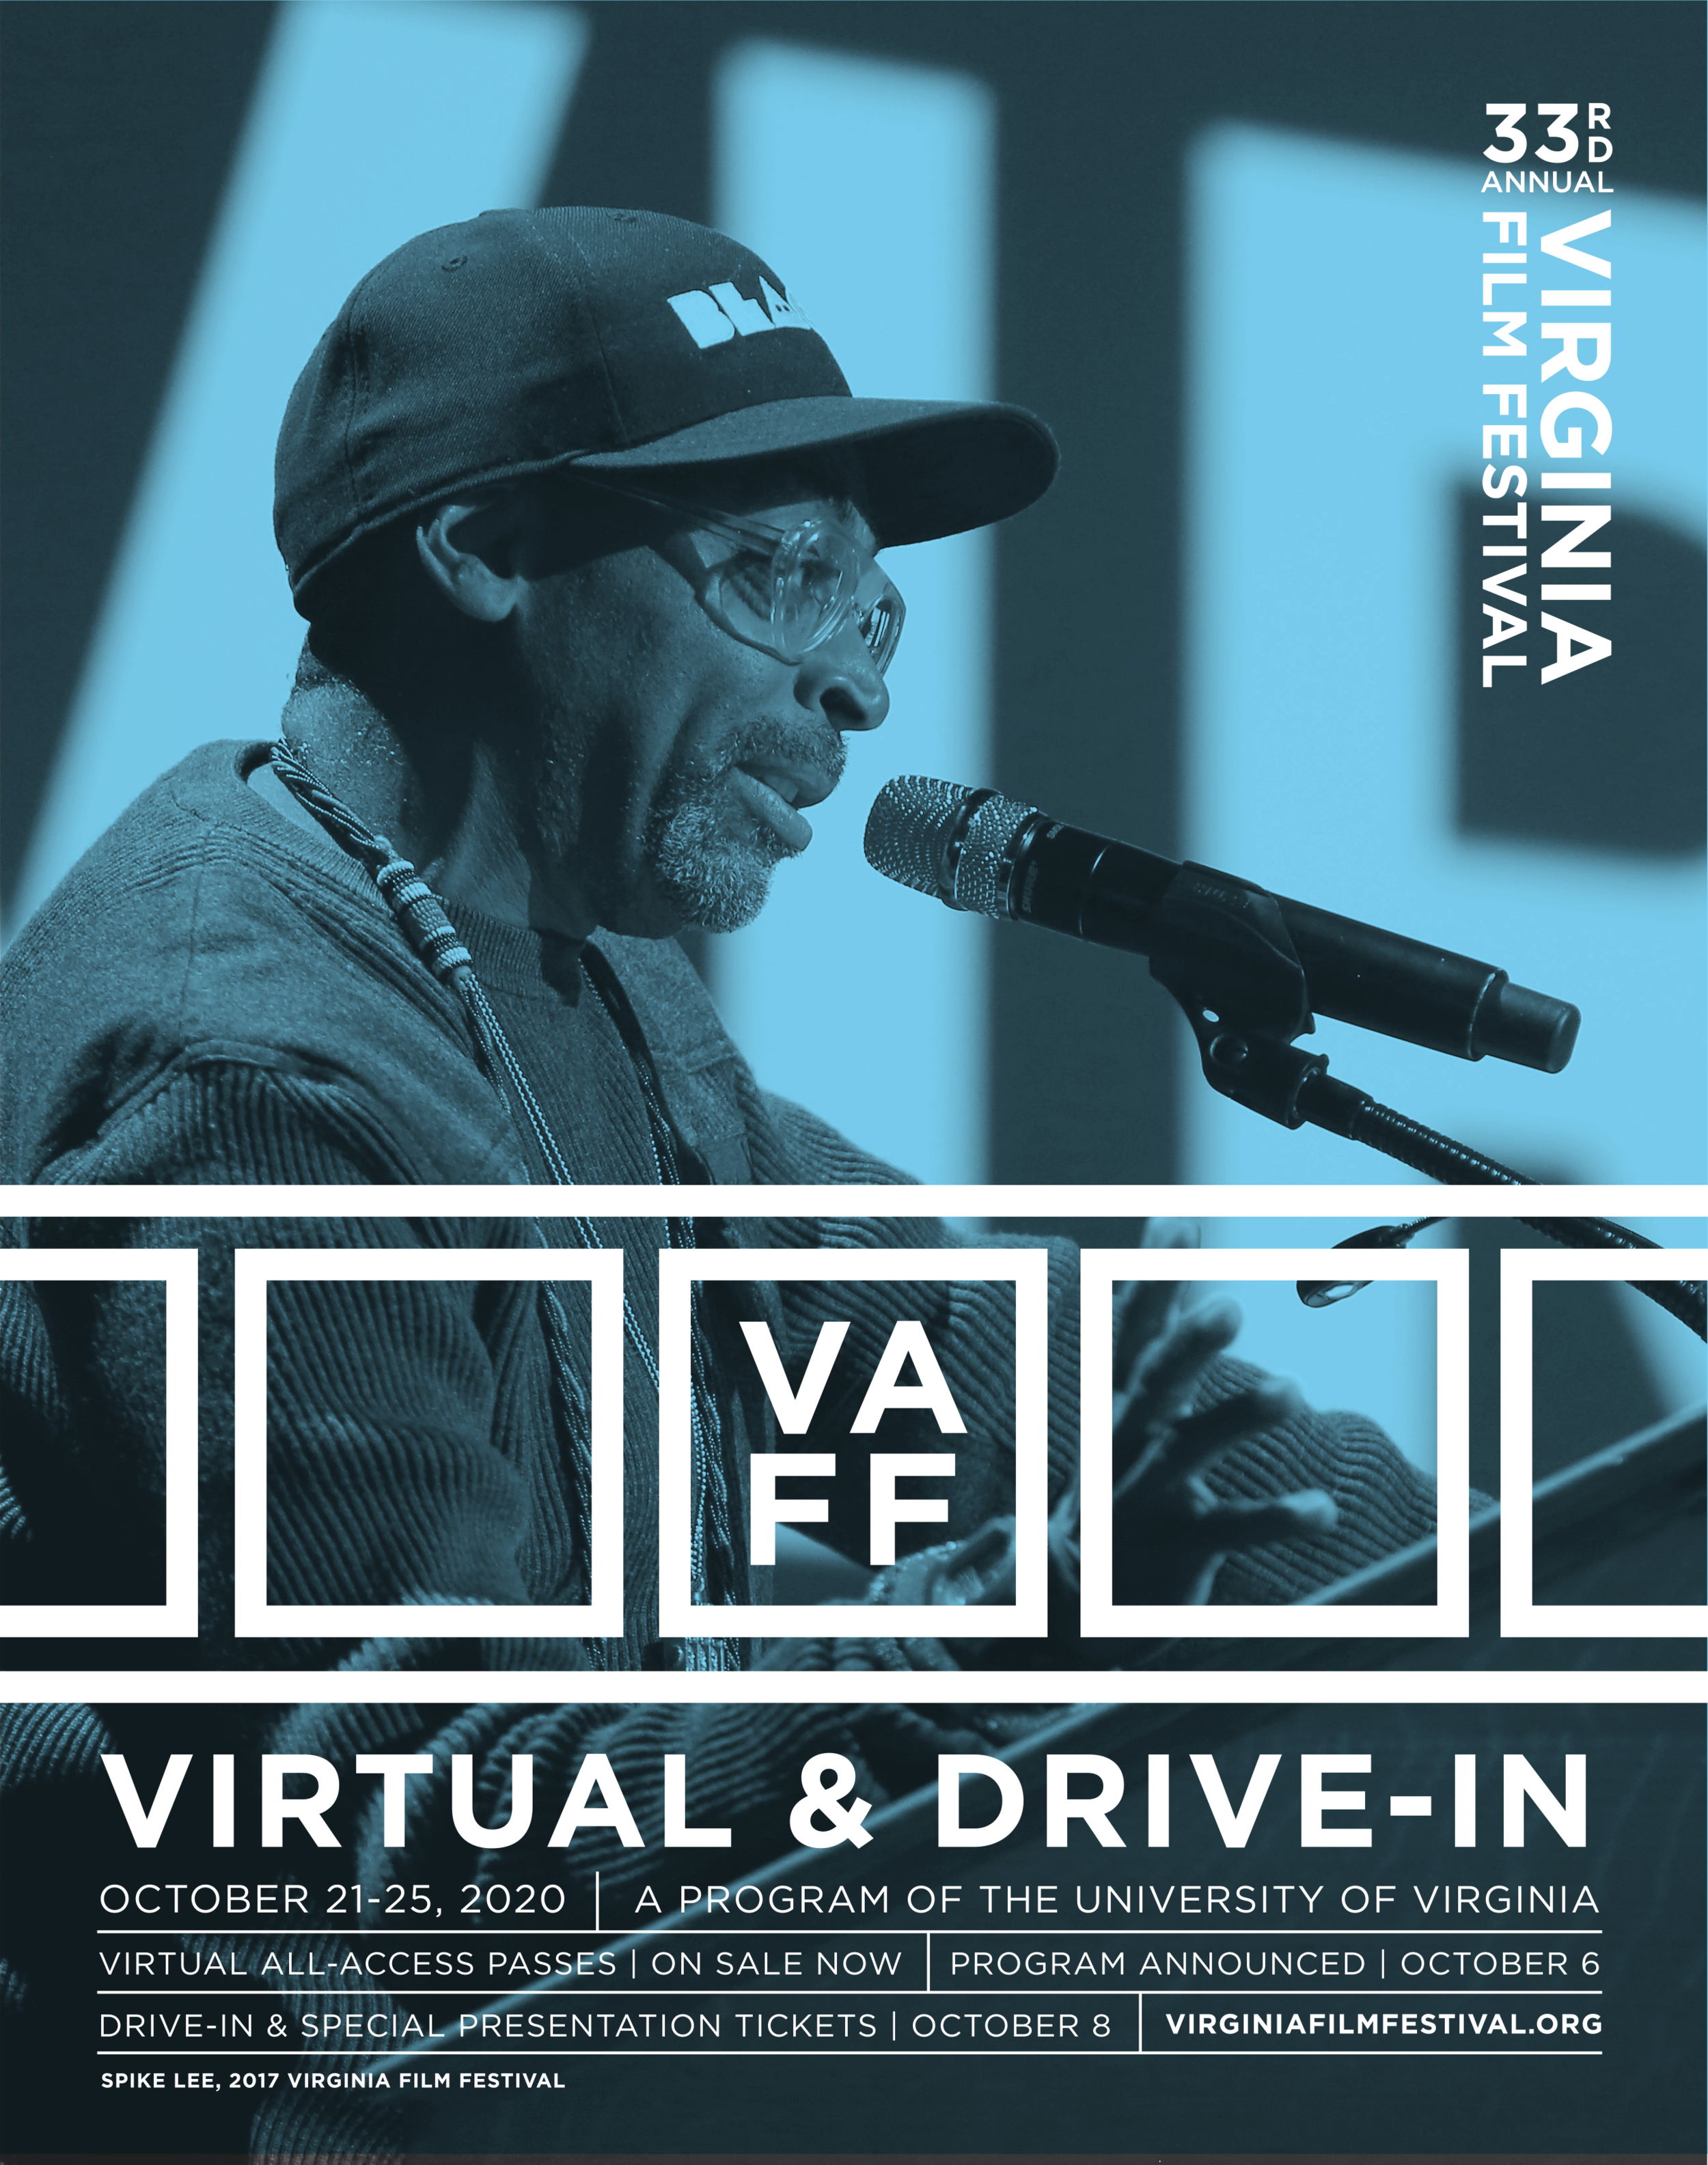 Virginia Film Festival is Going Virtual this Year